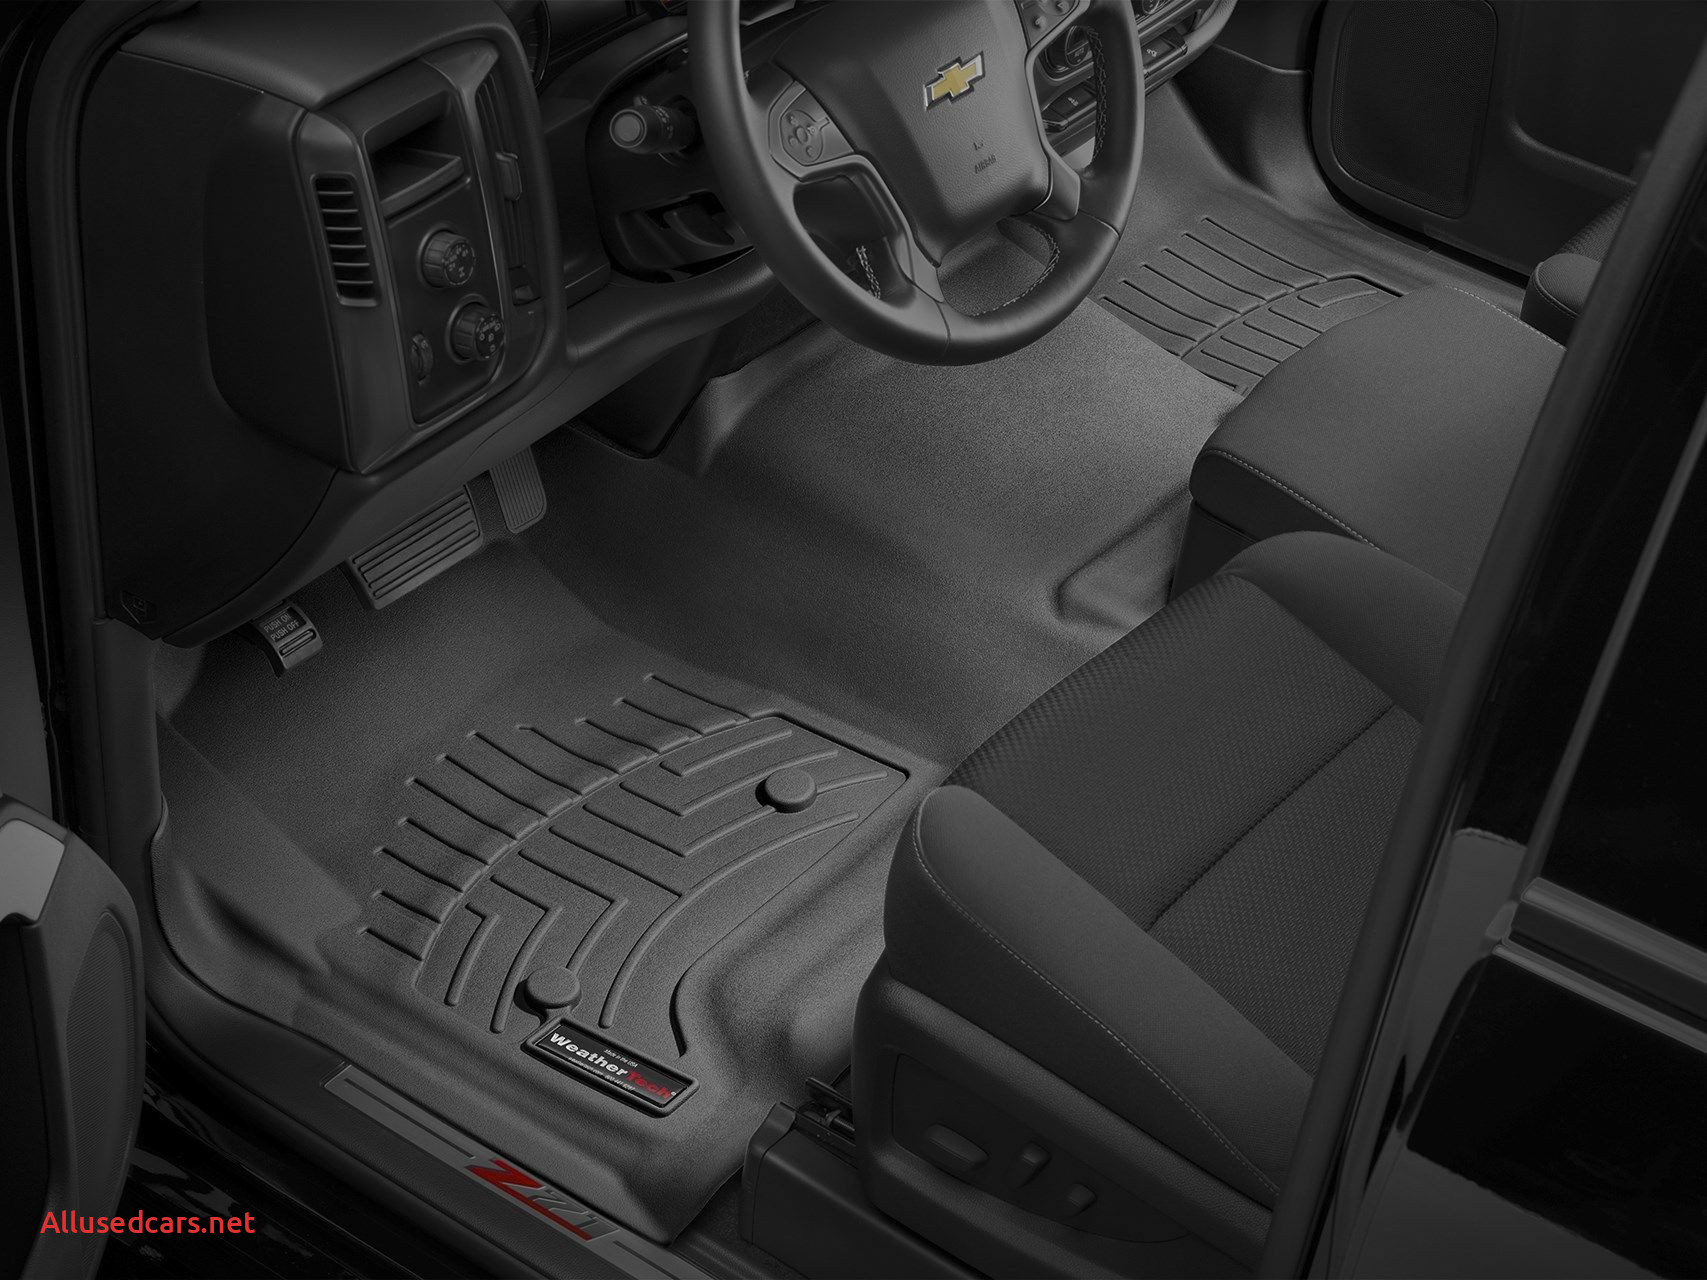 2013 Chevy Tahoe Best Of Kia 2011 sorento Floorliner